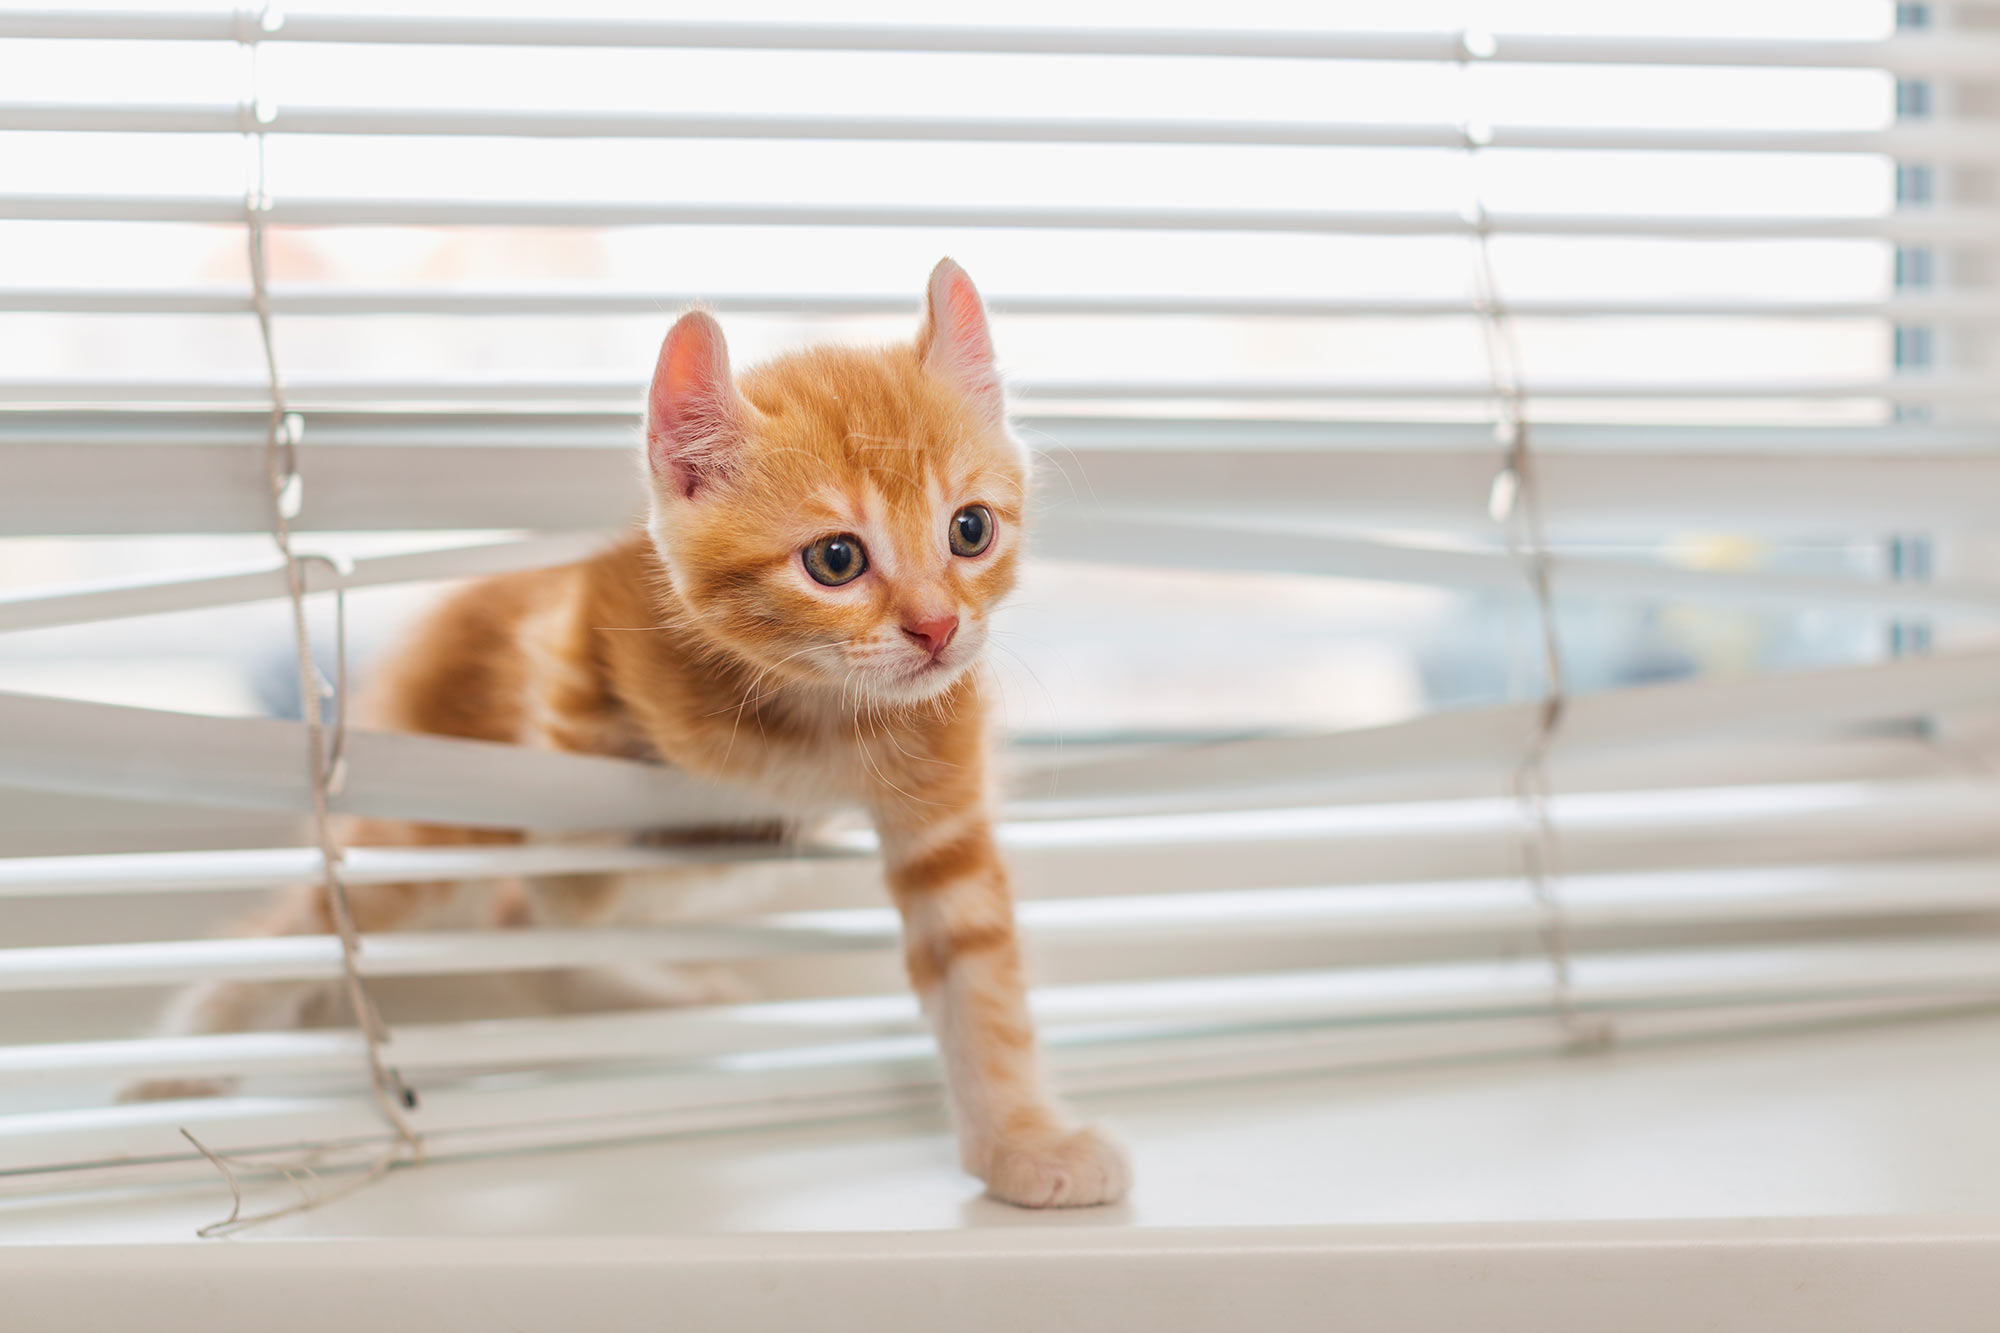 Plantation shutters have no cords or strings so are less tempting to pets than blinds.